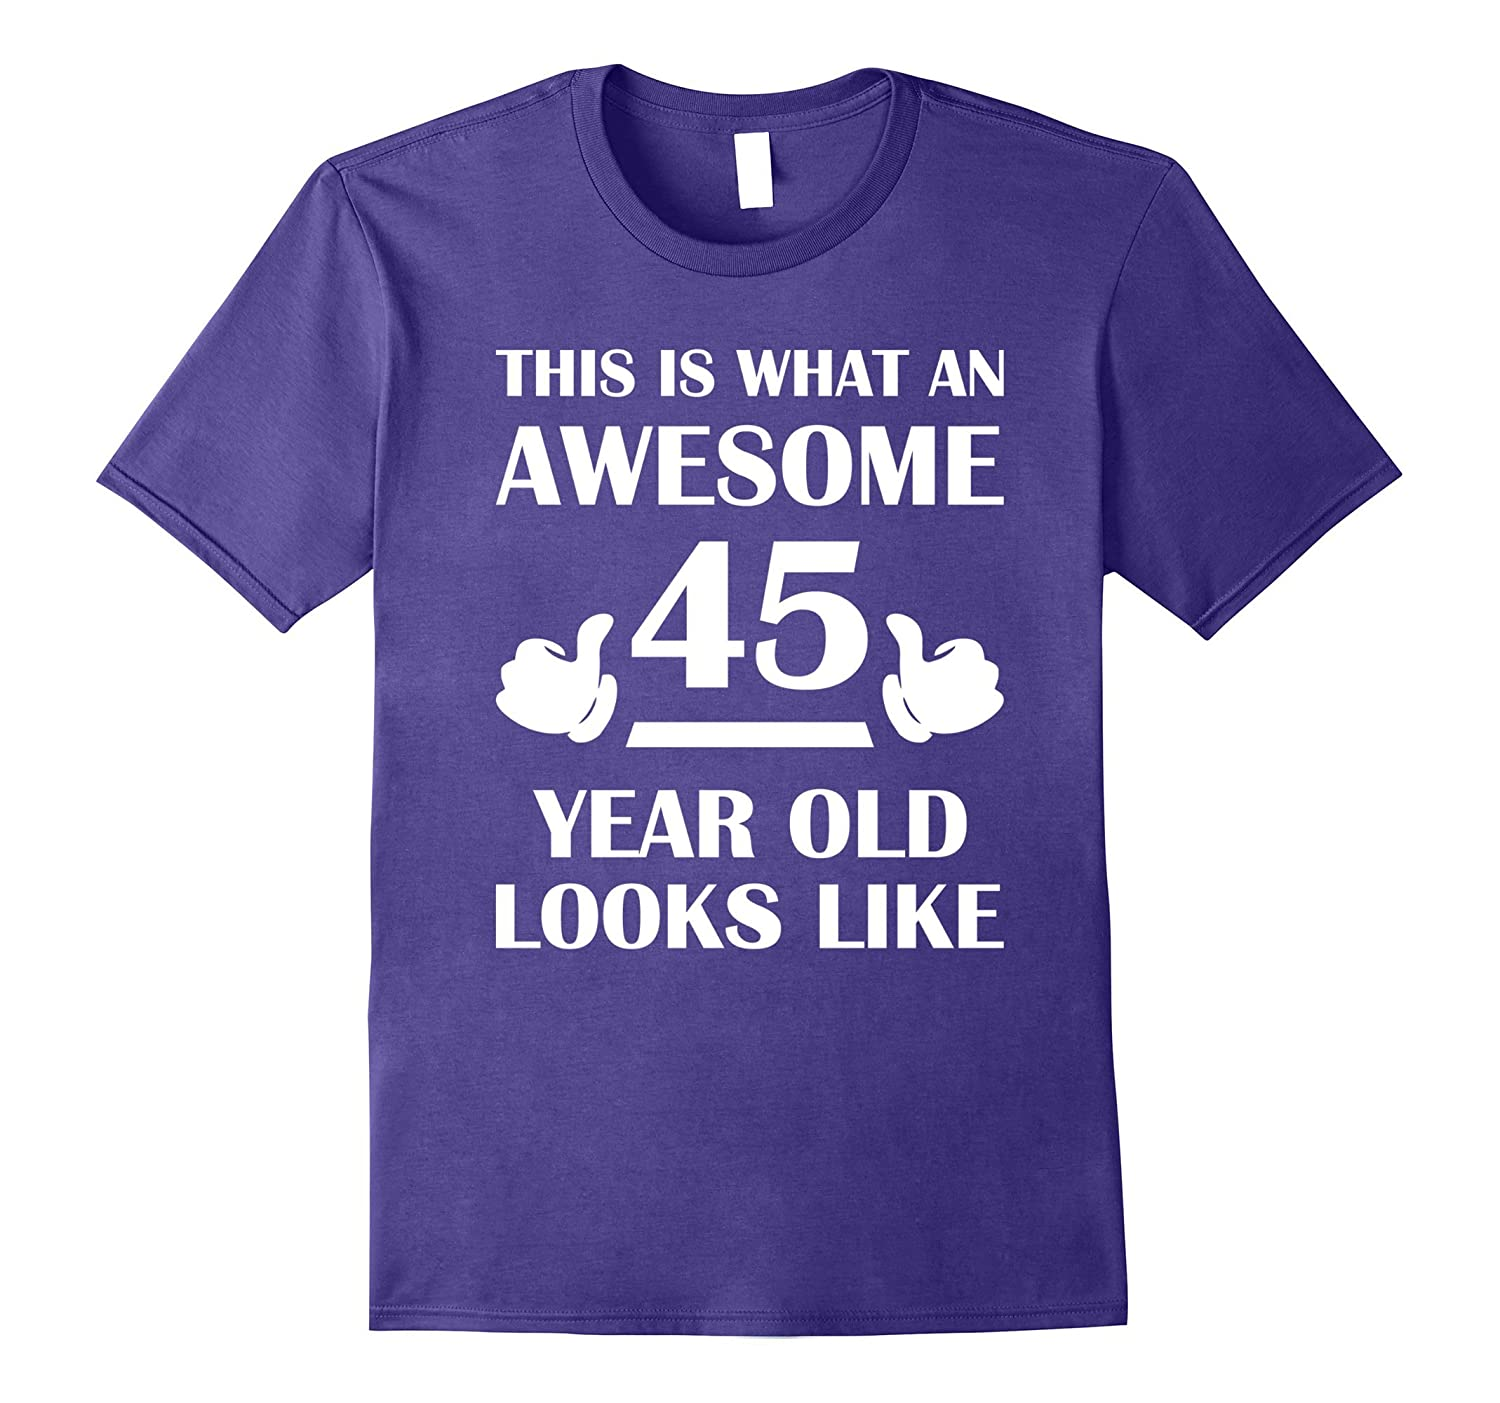 45 Year Old Birthday Gifts T Shirts For A Man And Woman Vaci Vaciuk